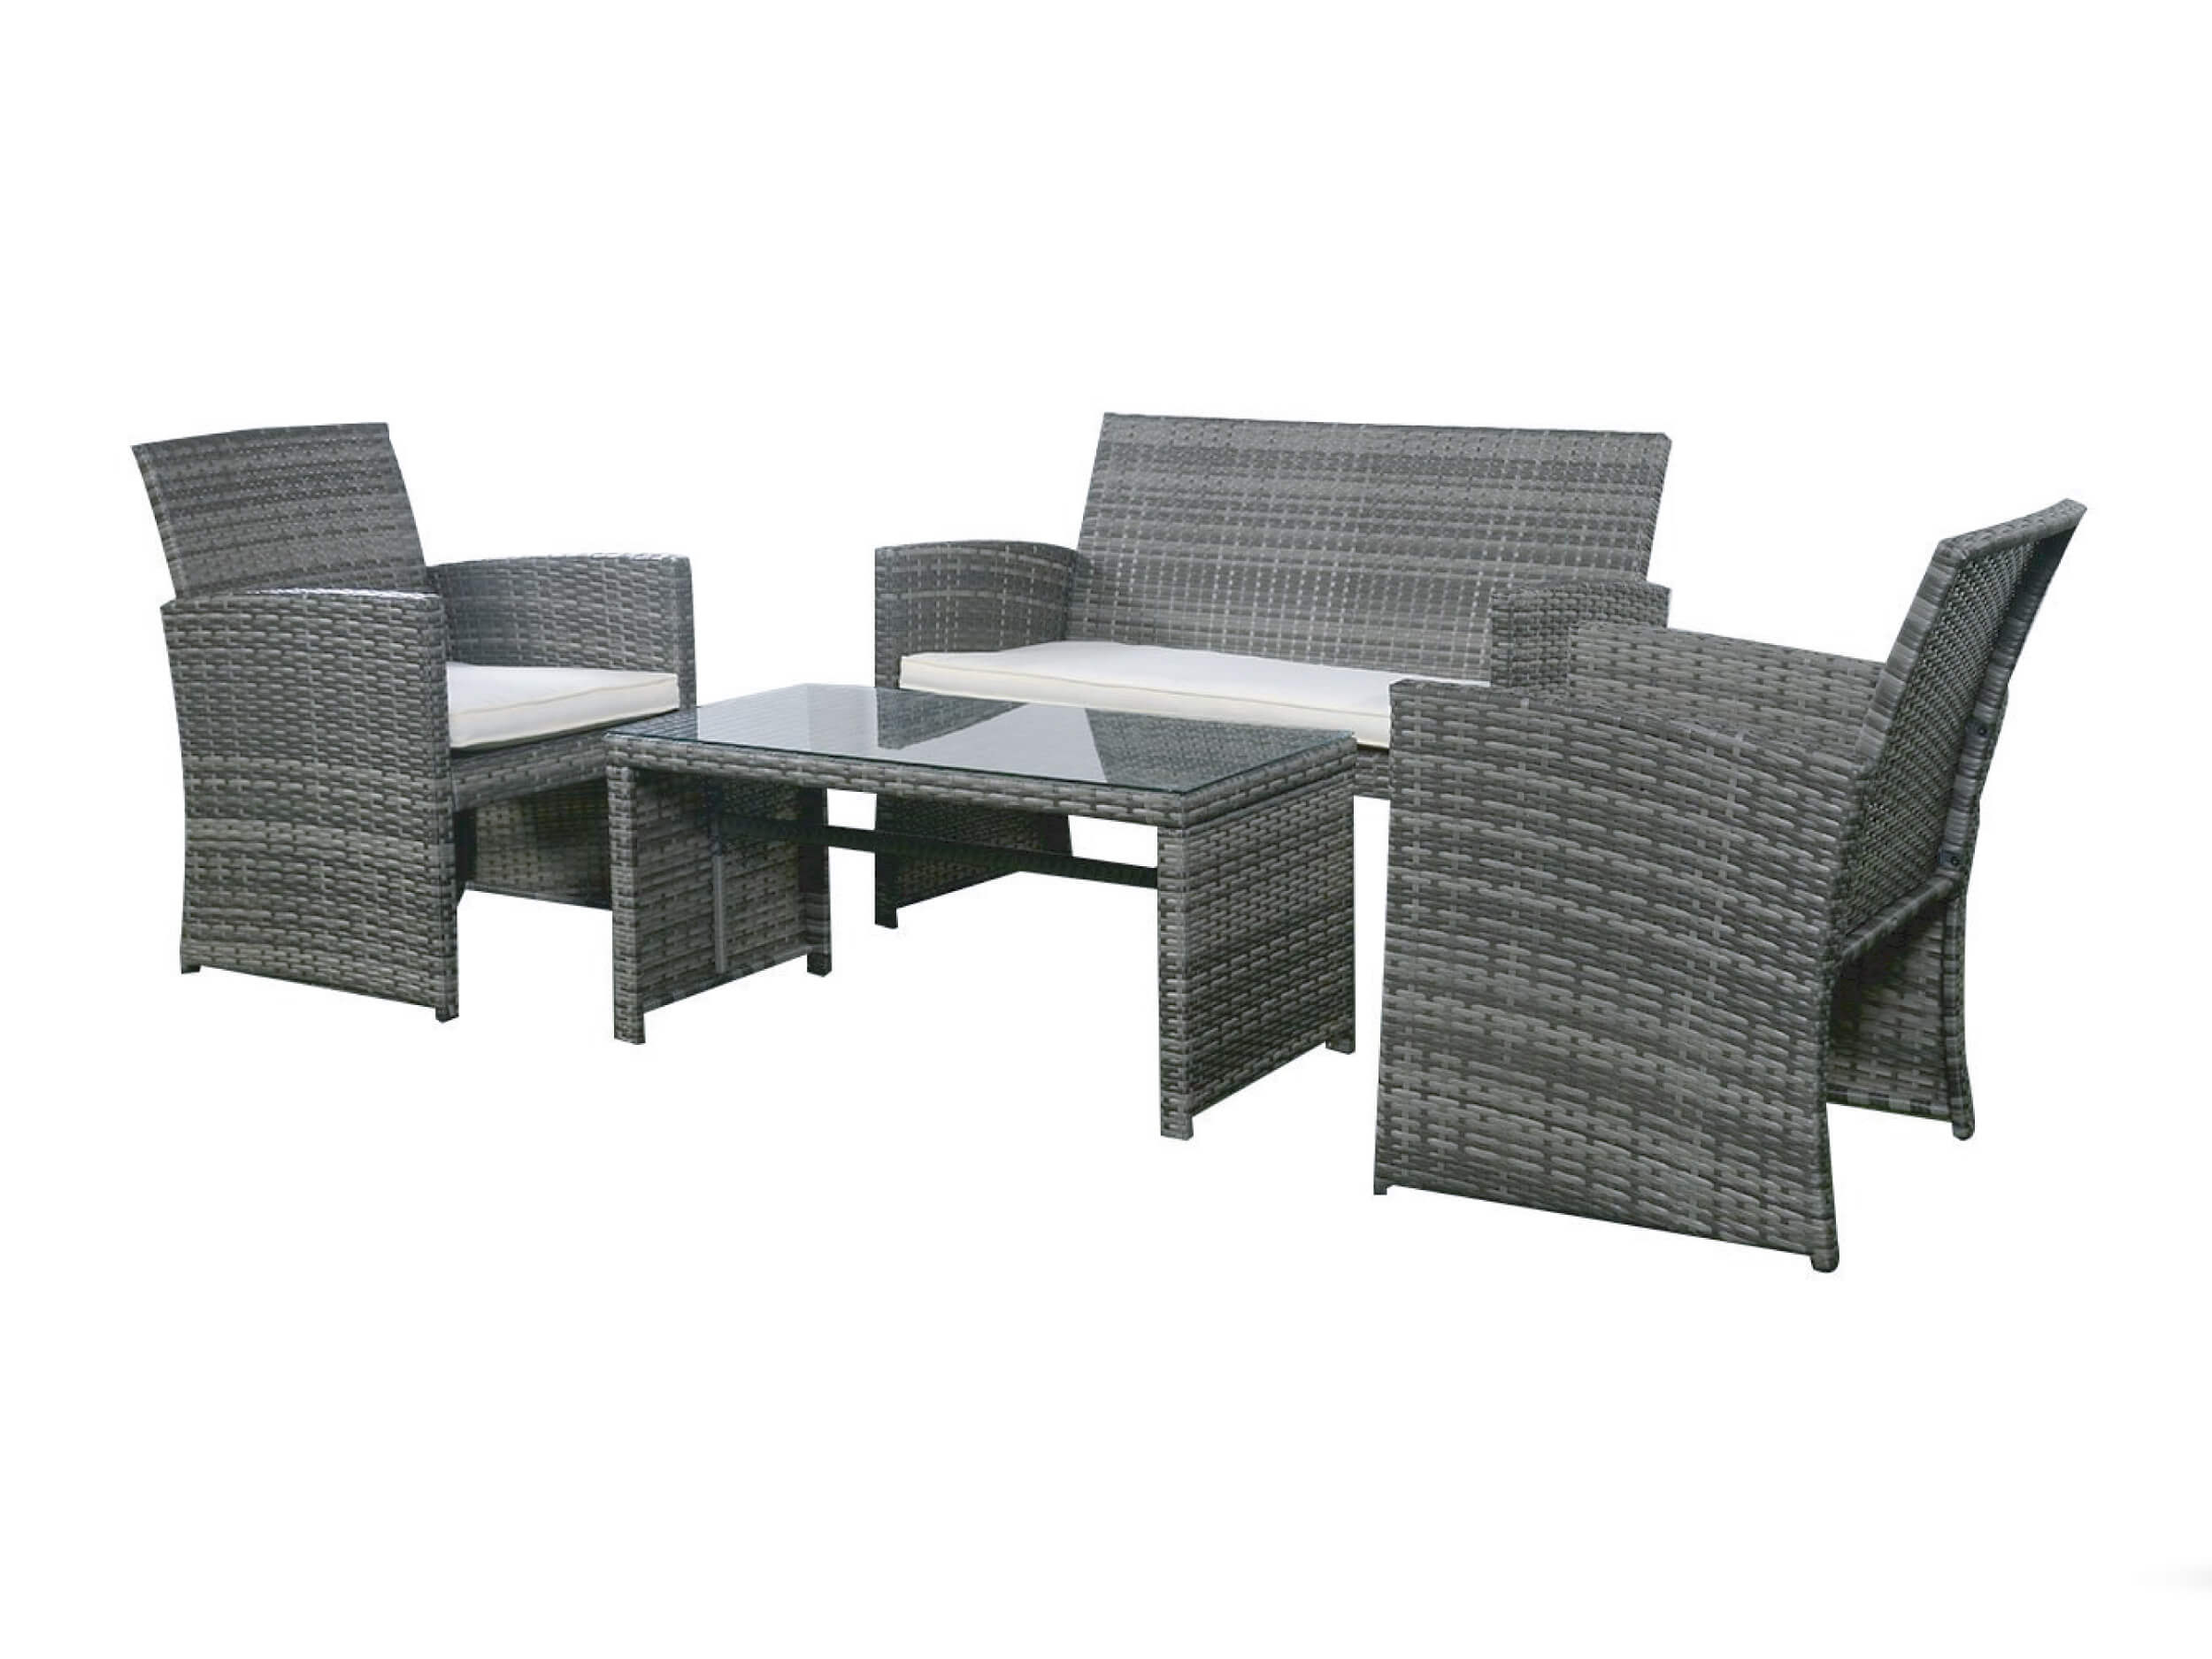 Cyber Monday Patio Furniture Deals